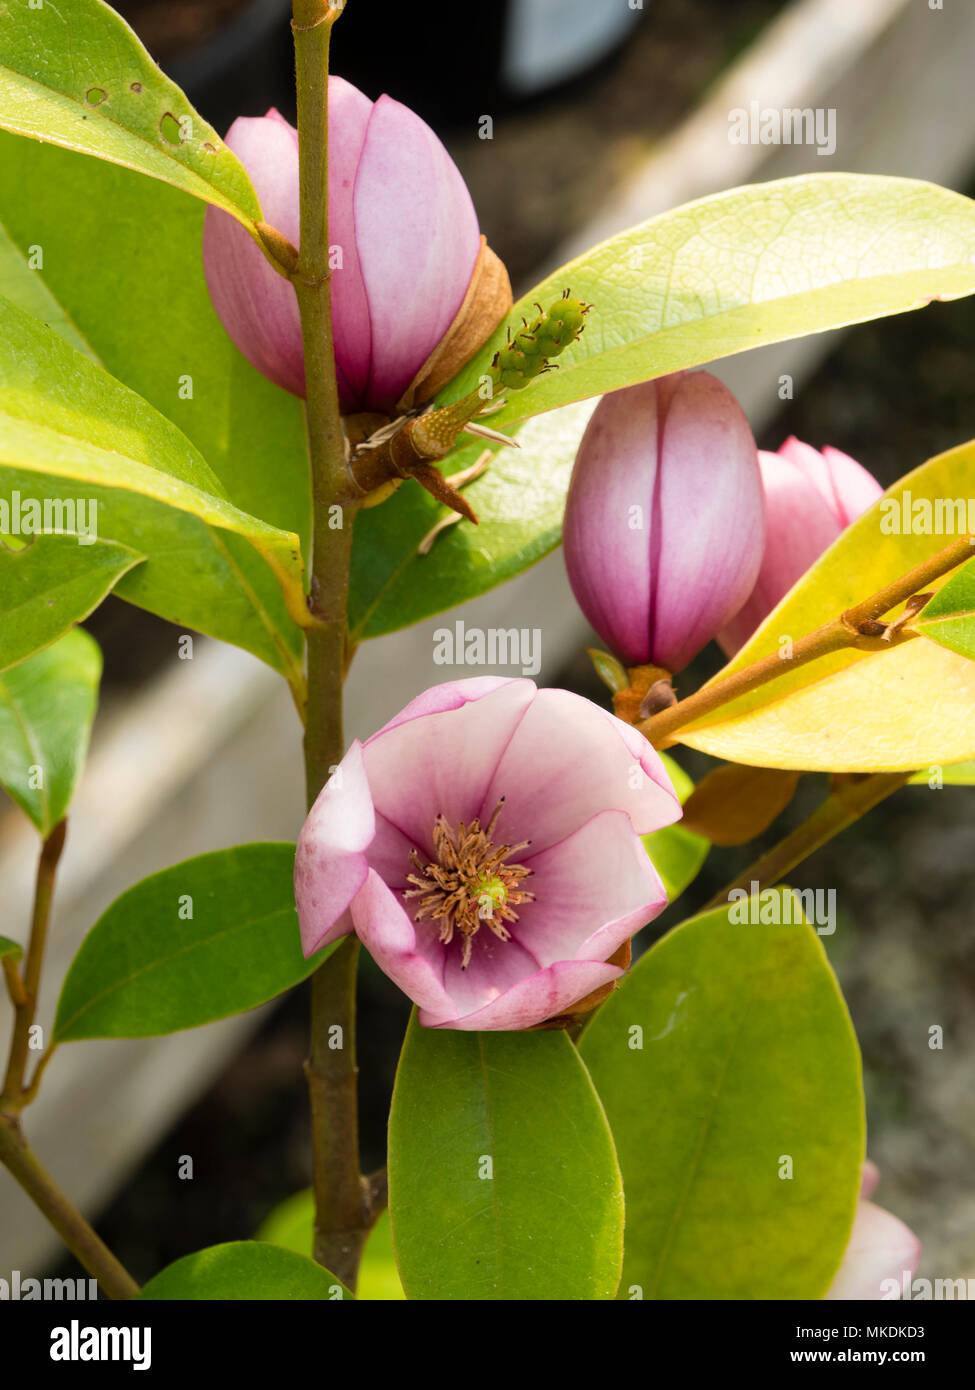 Small pink spring flowers of the complex hybrid magnolia michelia small pink spring flowers of the complex hybrid magnolia michelia type magnolia fairy blush mightylinksfo